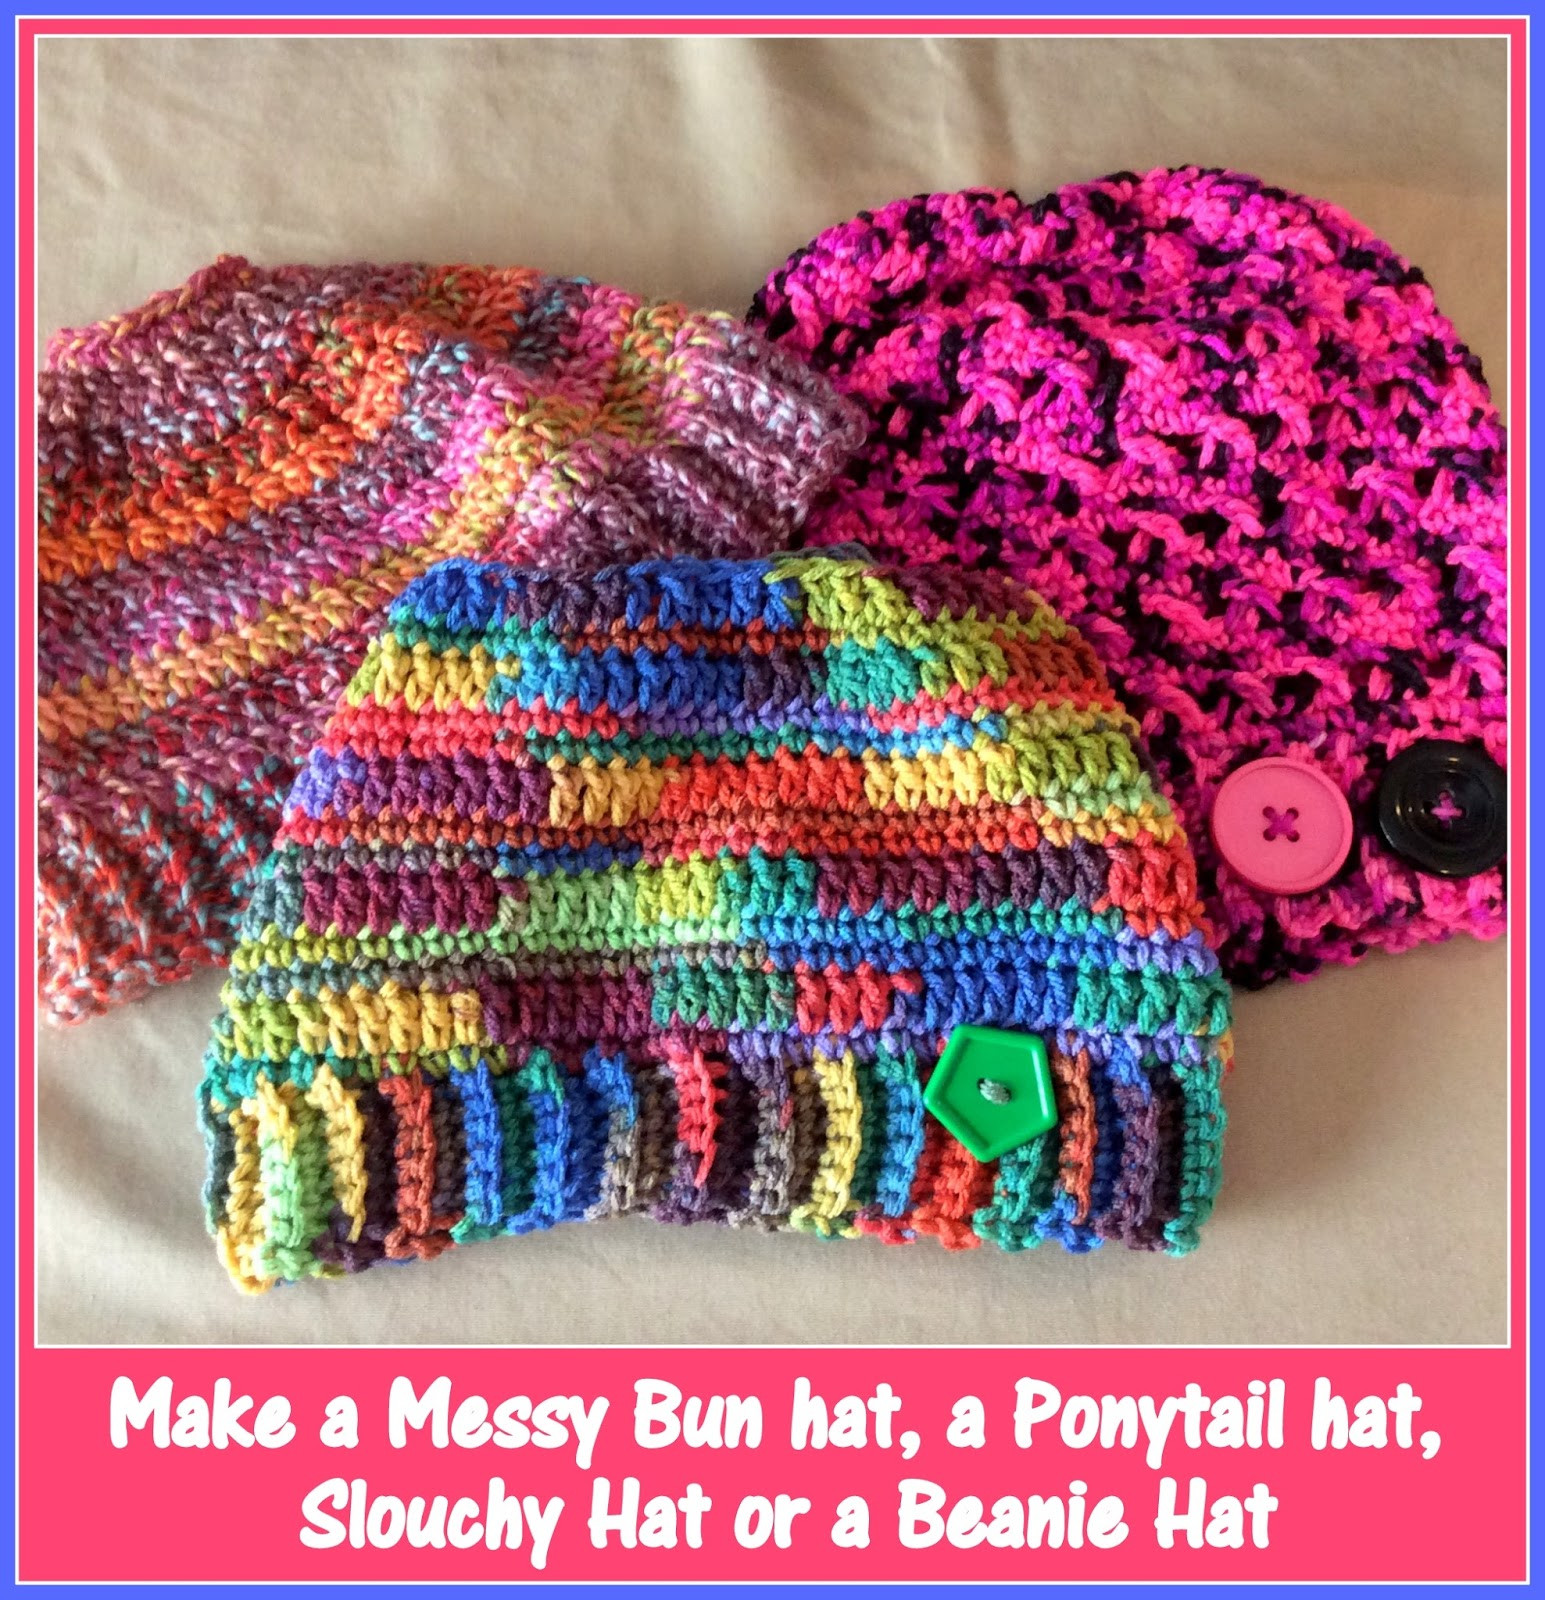 Elegant 23 Free Messy Bun Hat Crochet Patterns Make A Ponytail Crochet Messy Bun Of Contemporary 41 Images Crochet Messy Bun